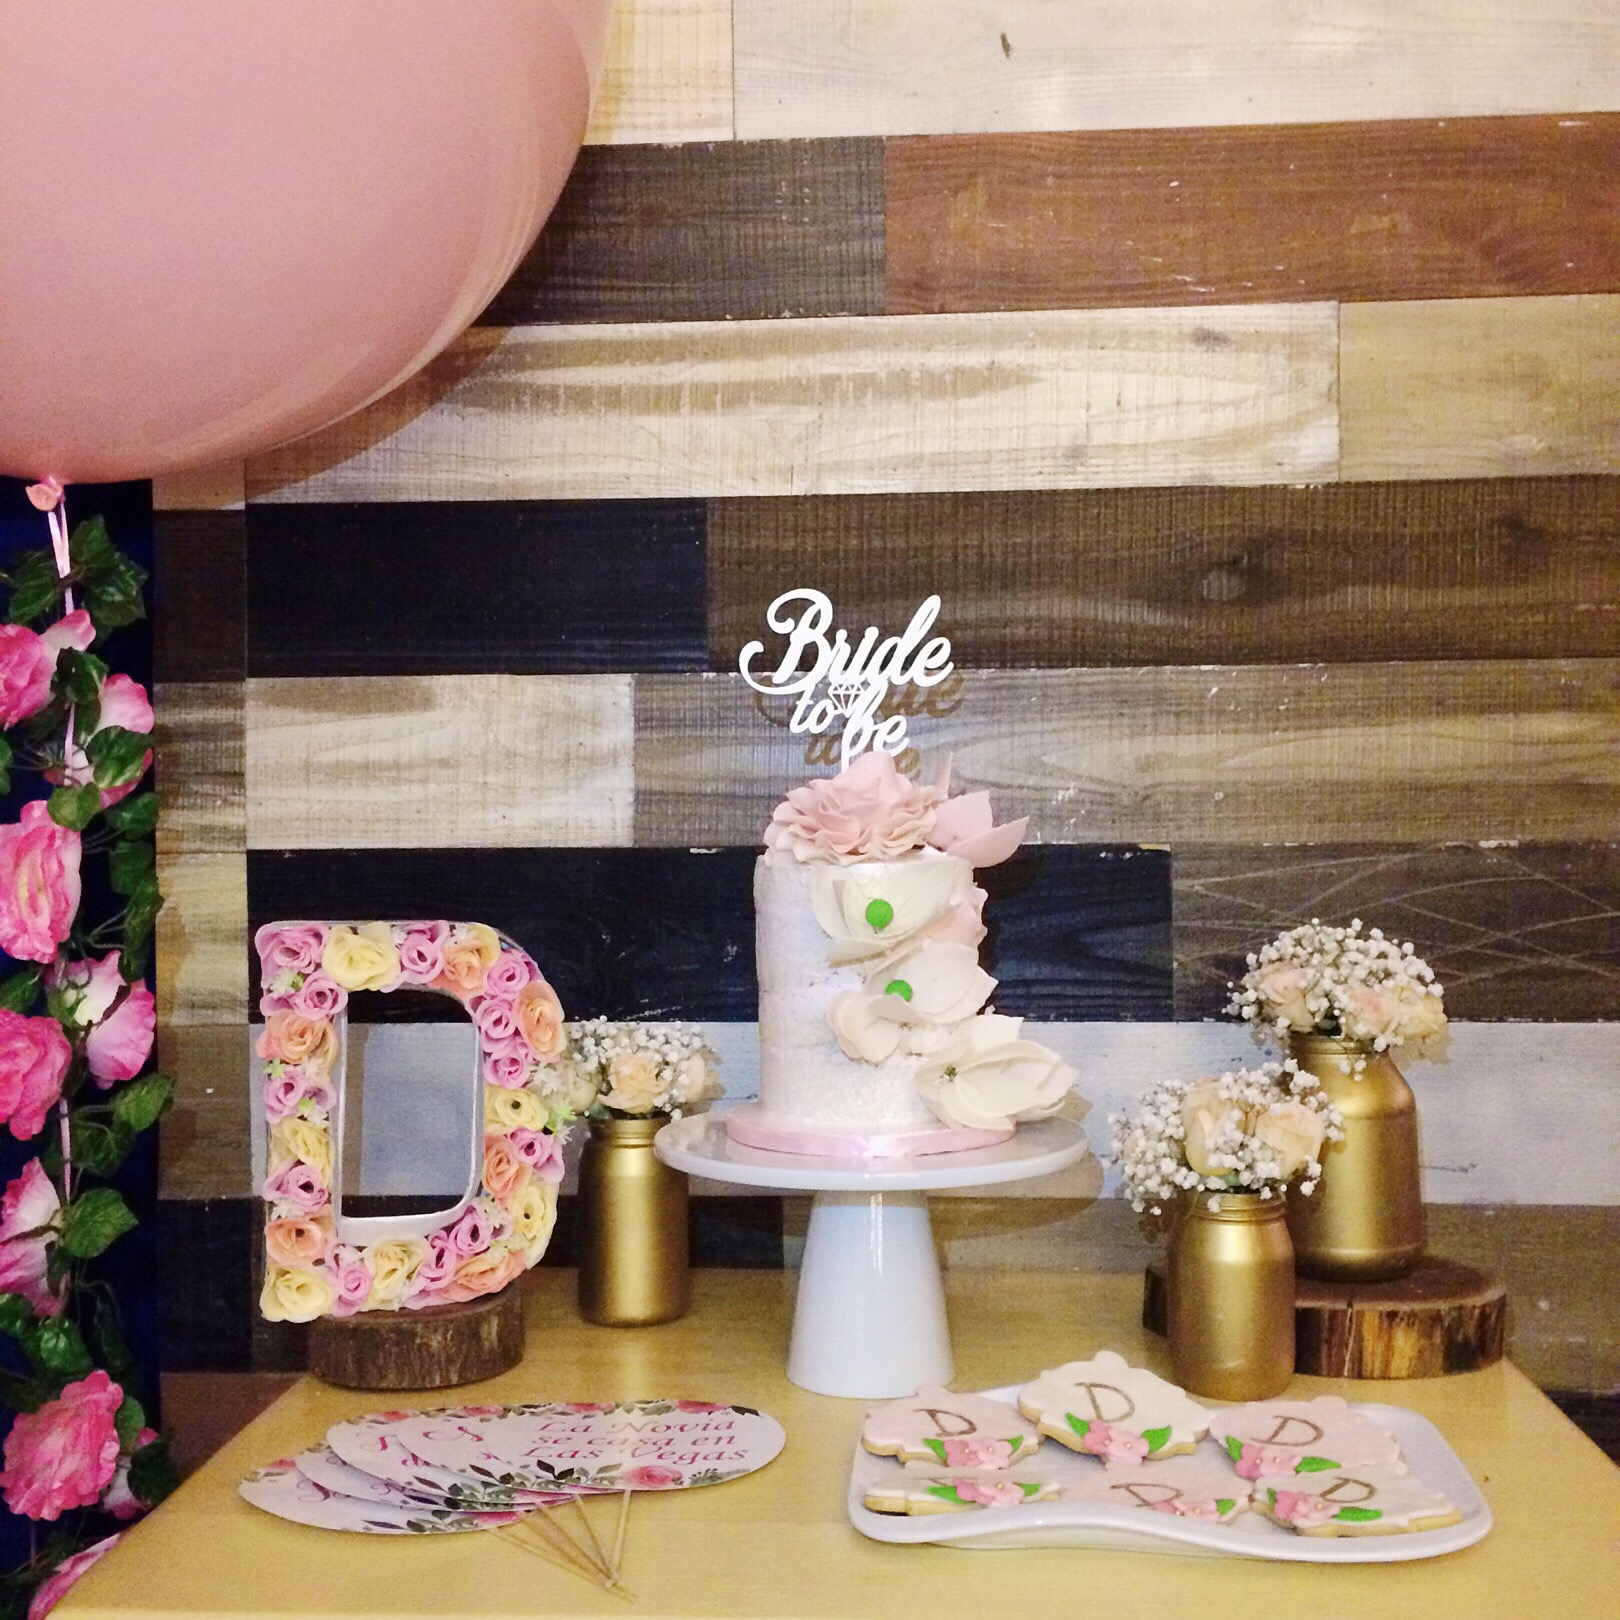 vintage-bridal-shower-cake-station-2